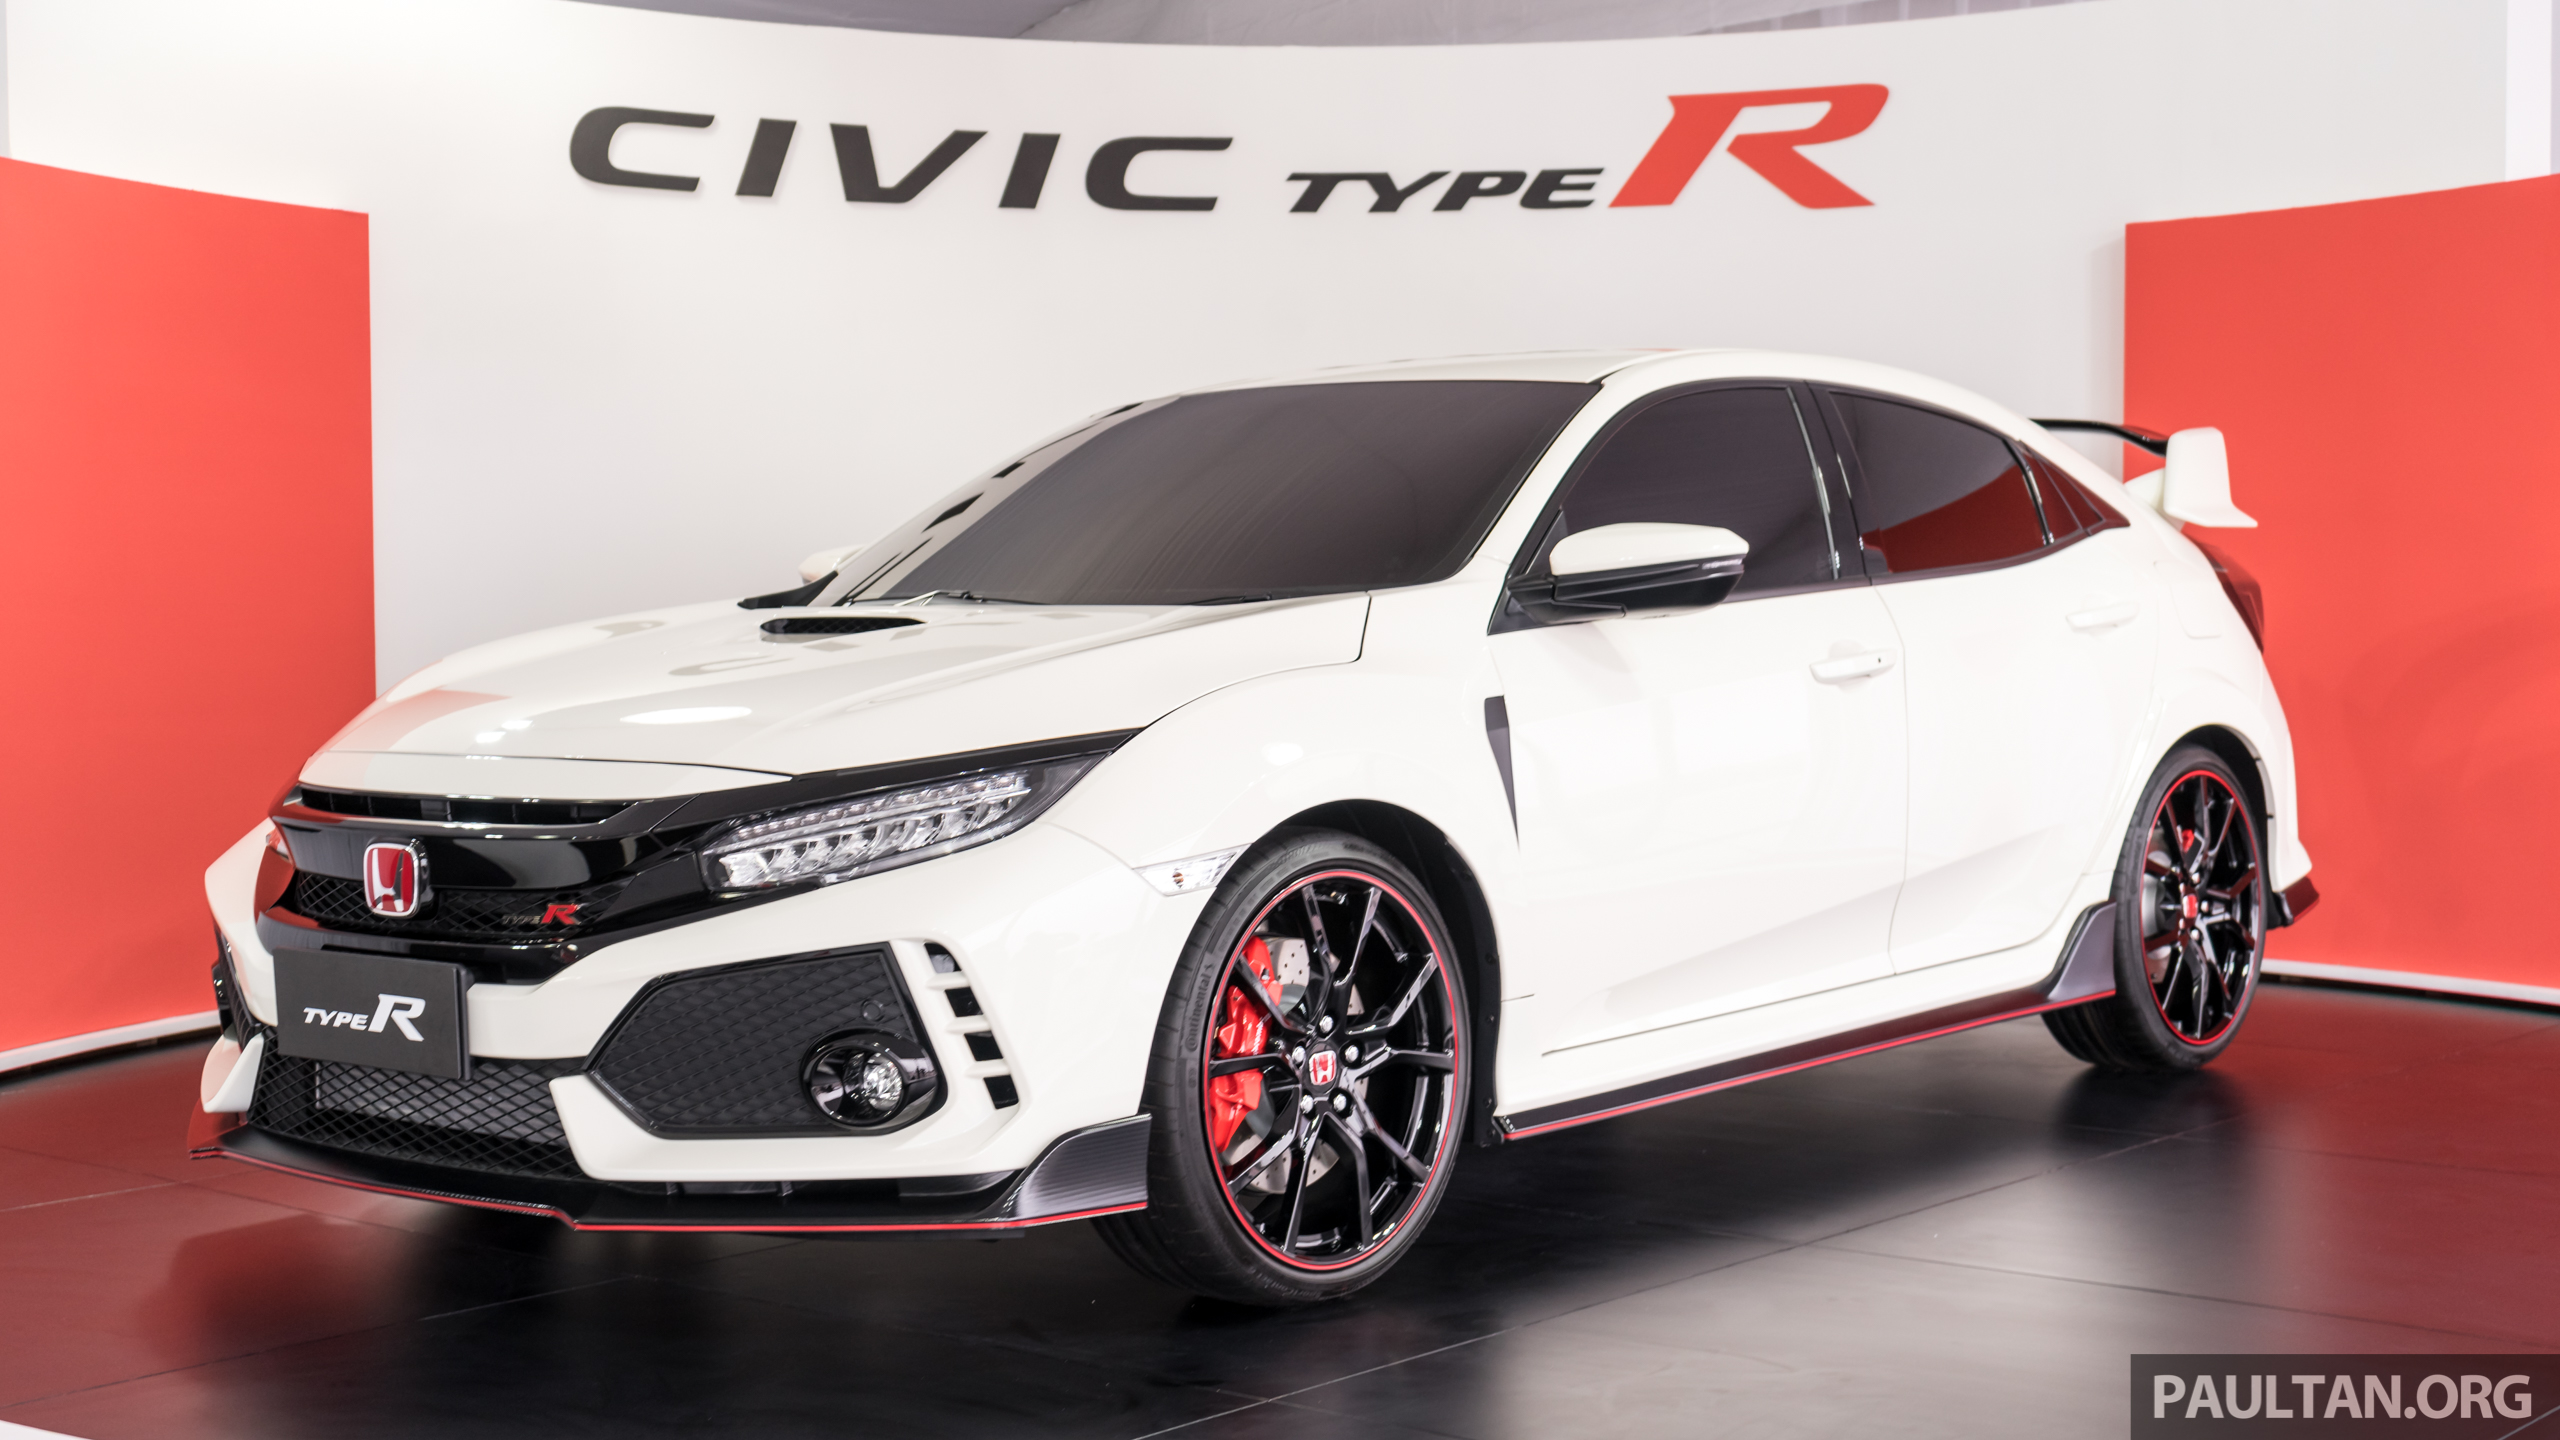 honda civic type r fk8 sah dipasarkan di malaysia 310 ps di prebiu di litar f1 sepang. Black Bedroom Furniture Sets. Home Design Ideas